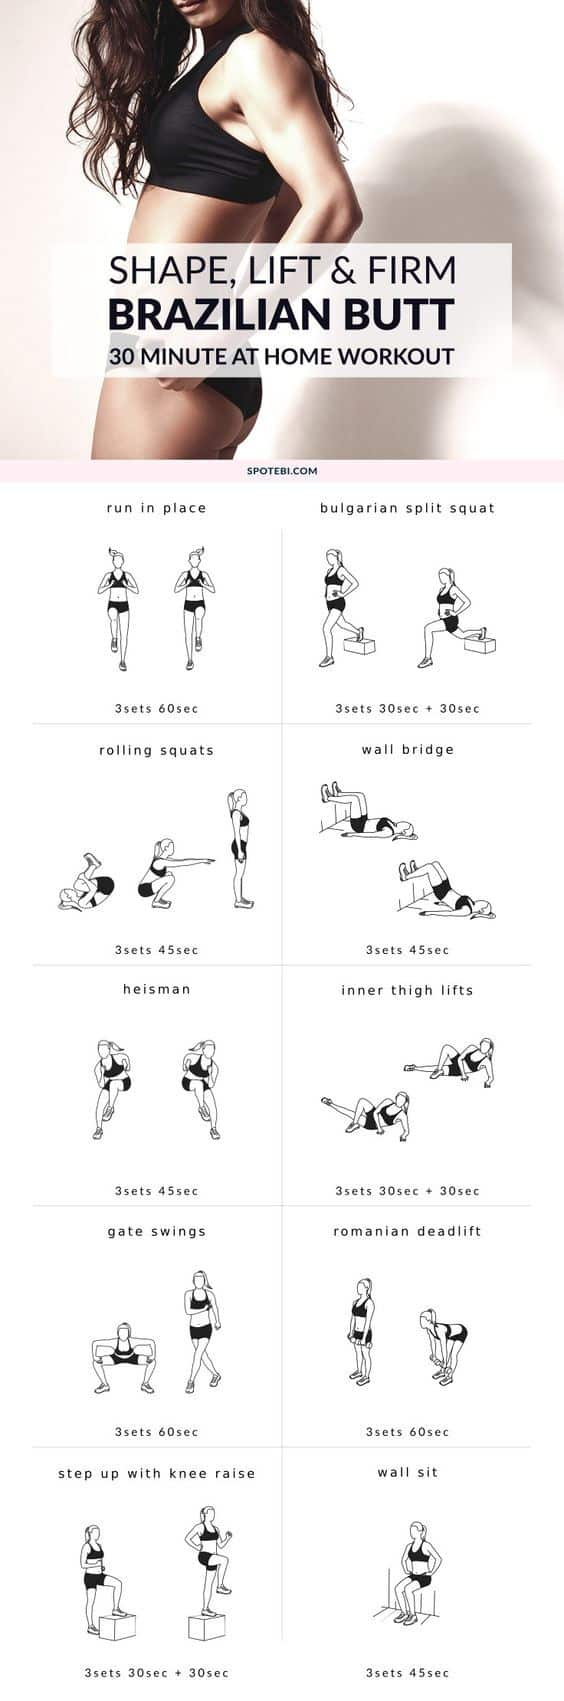 All of us women want that perfect butt! If a Kardashian butt is too big no worries, these butt workouts are designed to tone and firm up your backside to help you achieve the butt you have always wanted.